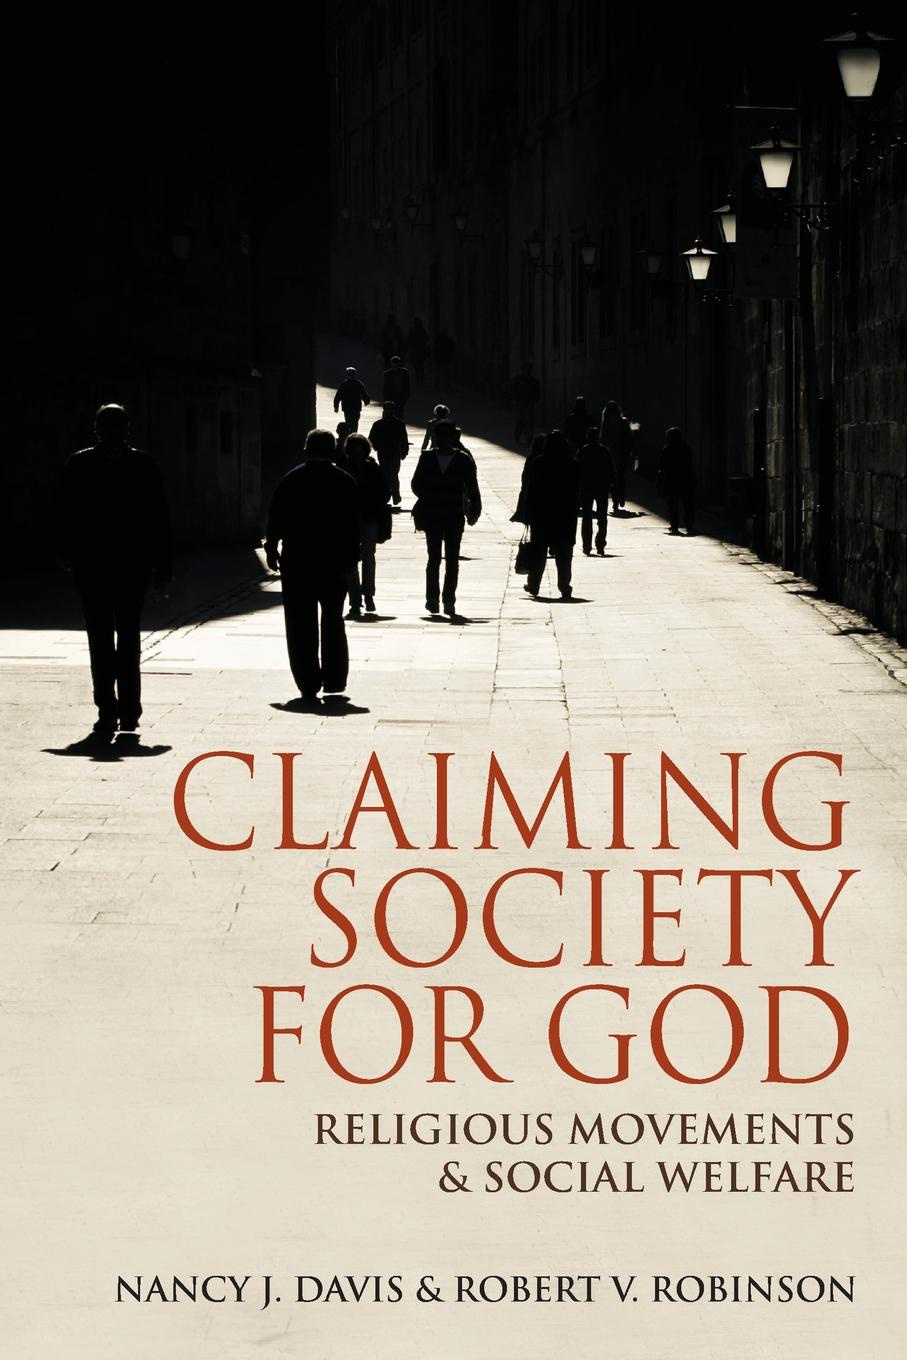 Nancy J. Davis, Robert V. Robinson Claiming Society for God. Religious Movements and Social Welfare in Egypt, Israel, Italy, and the United States